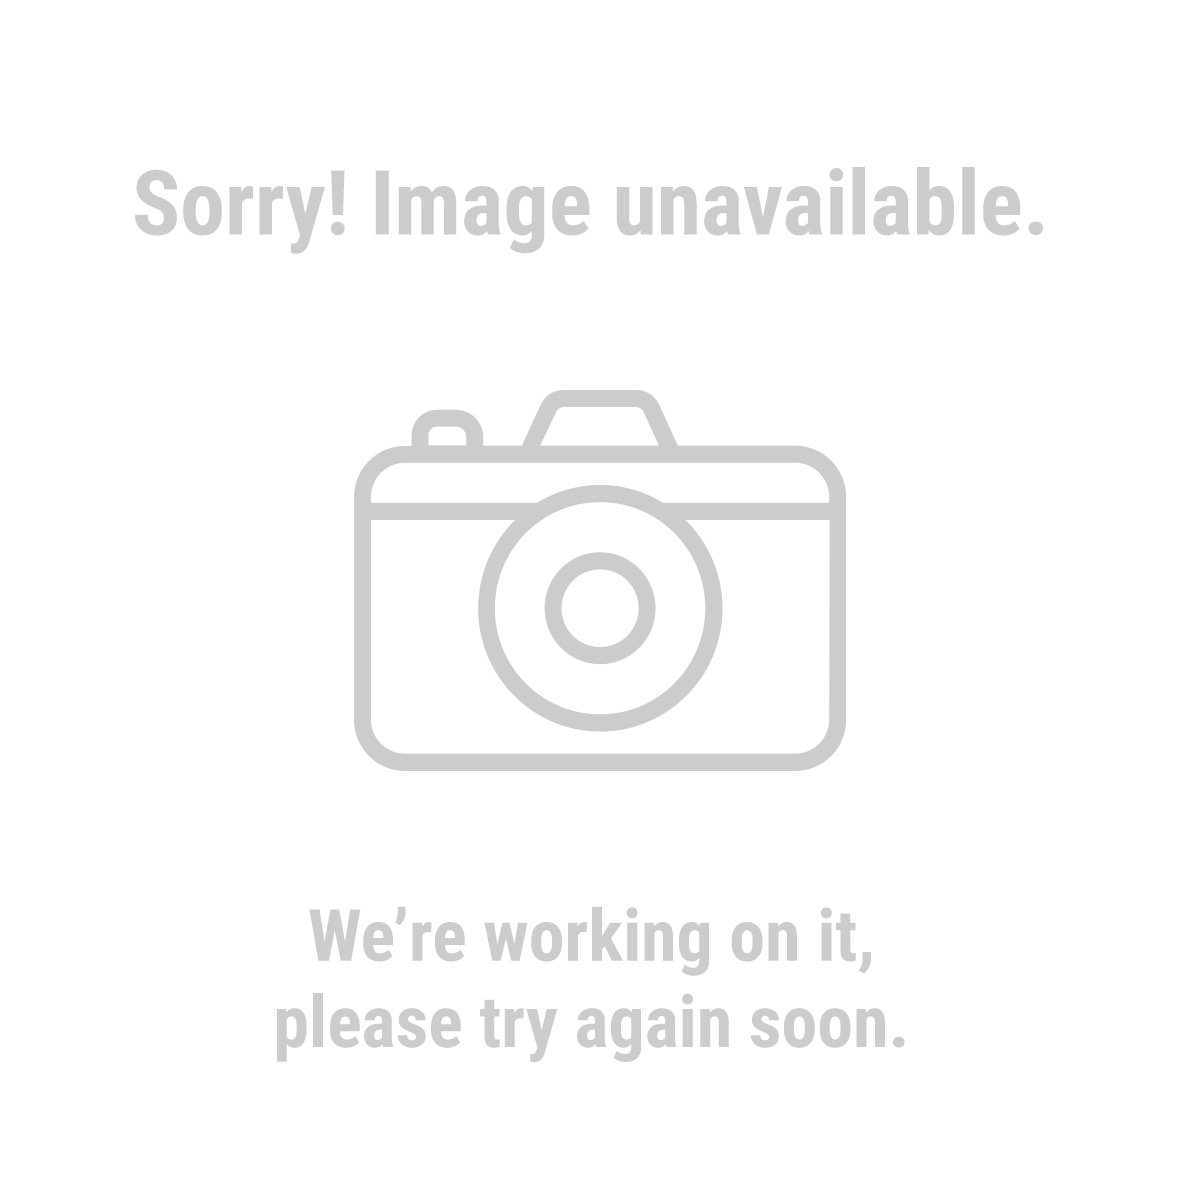 Central Pneumatic 69861 Professional 6-Color Airbrush Kit with Holder